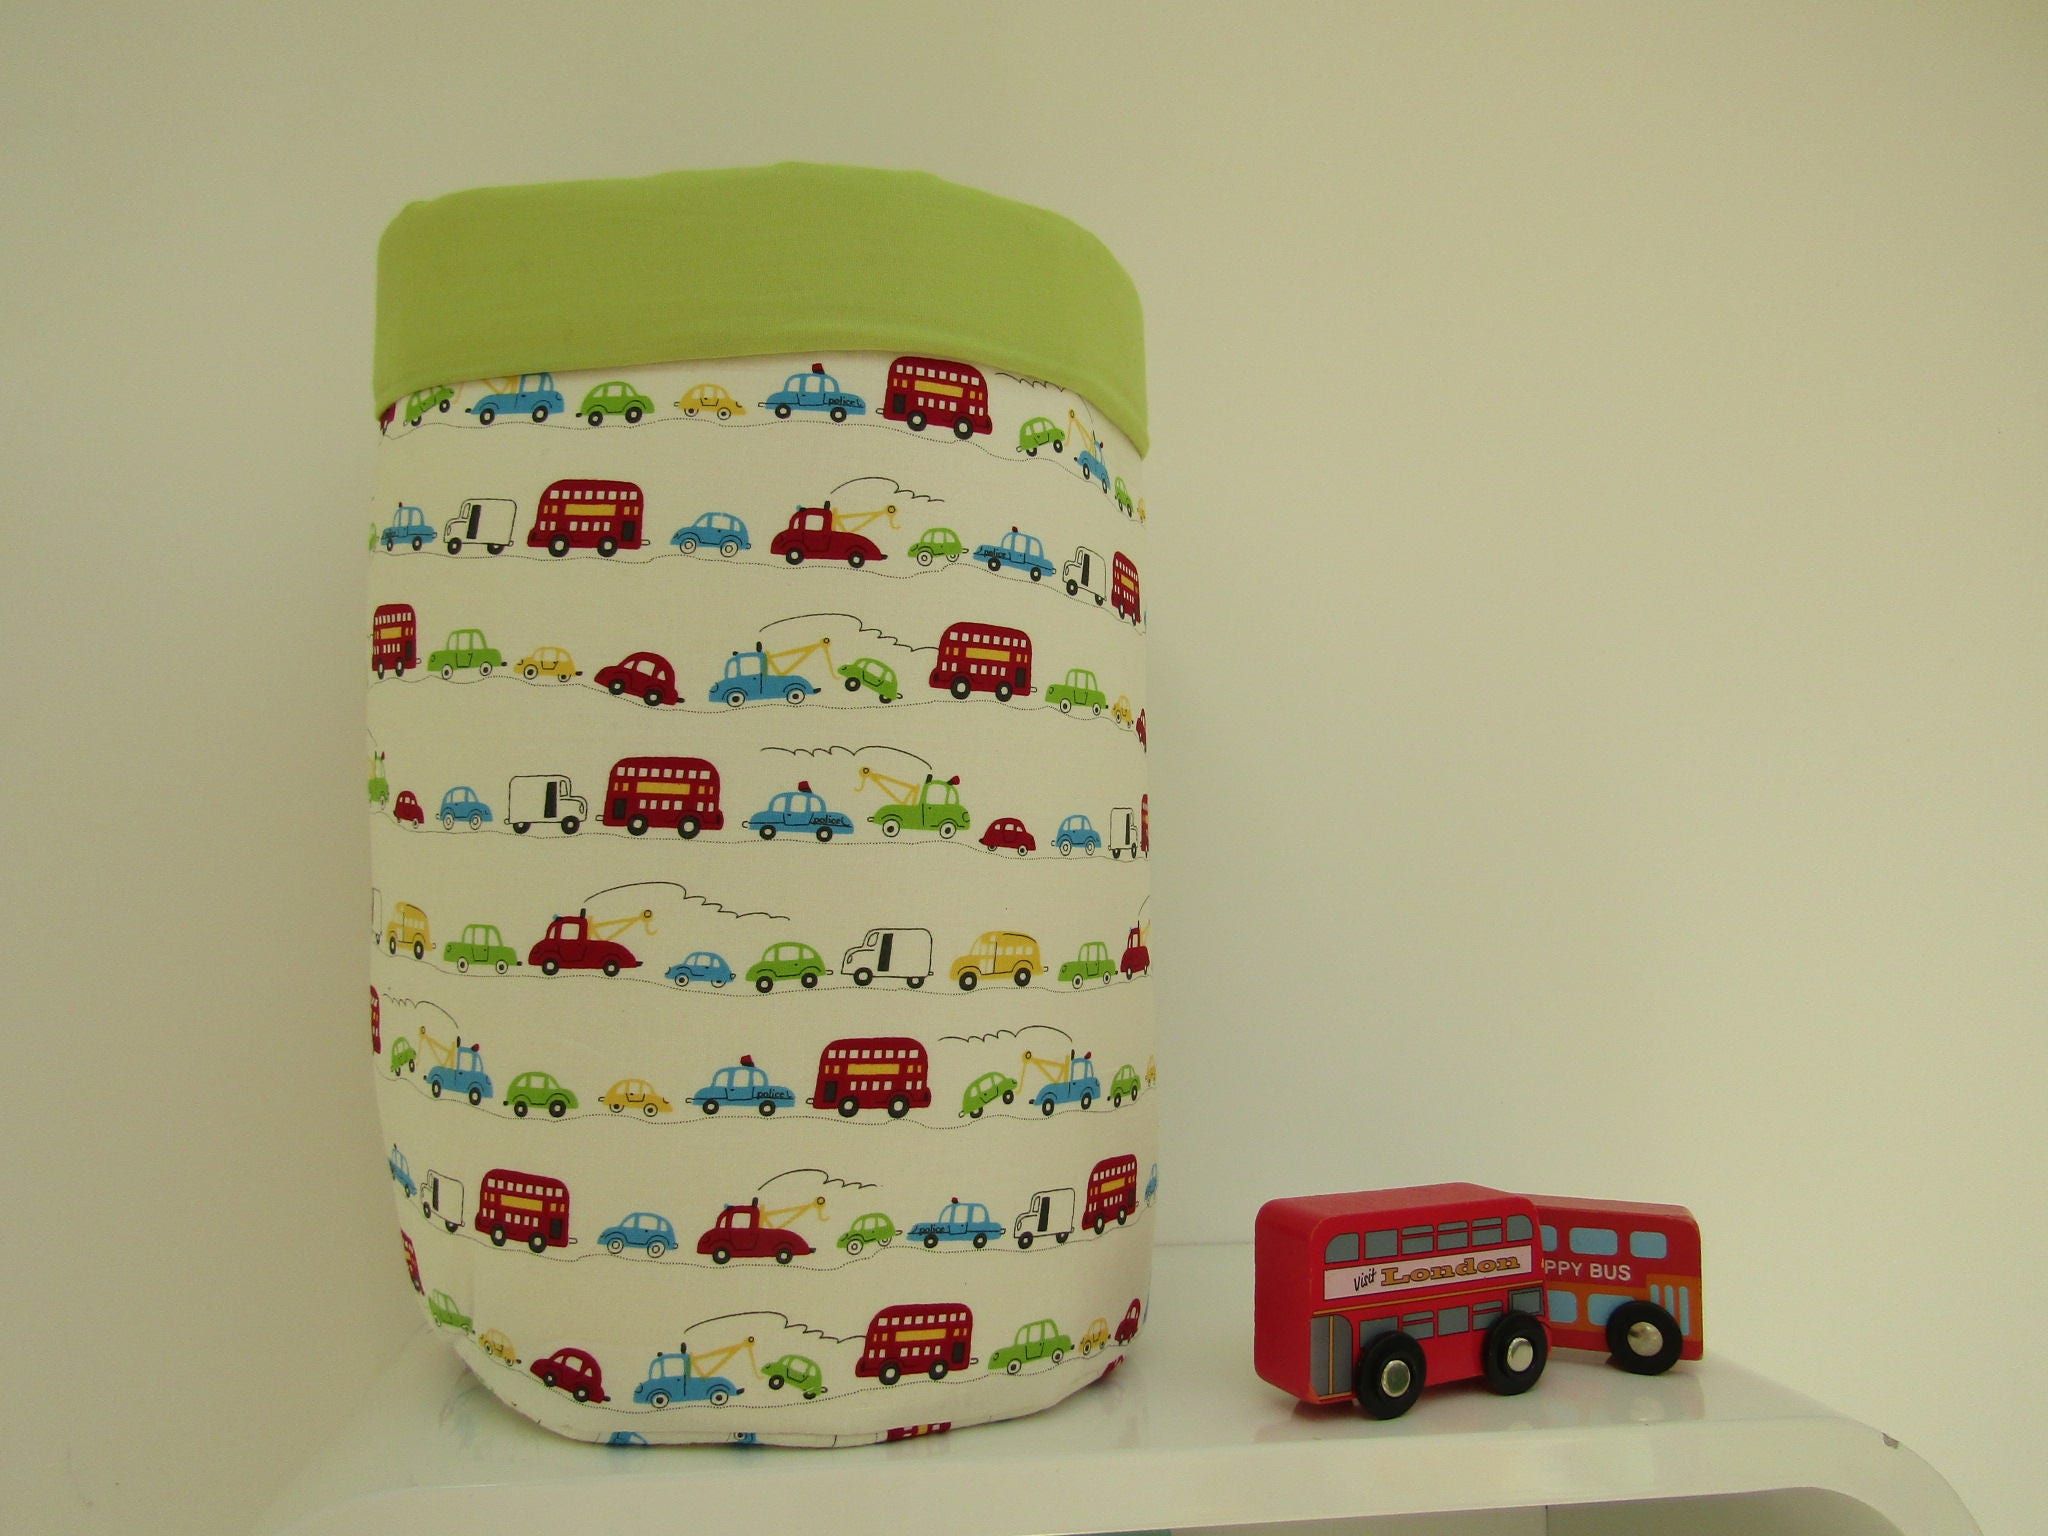 Fabric storage bucket fabric toy storage baby changing bucket new baby gift vehicles print london bus print